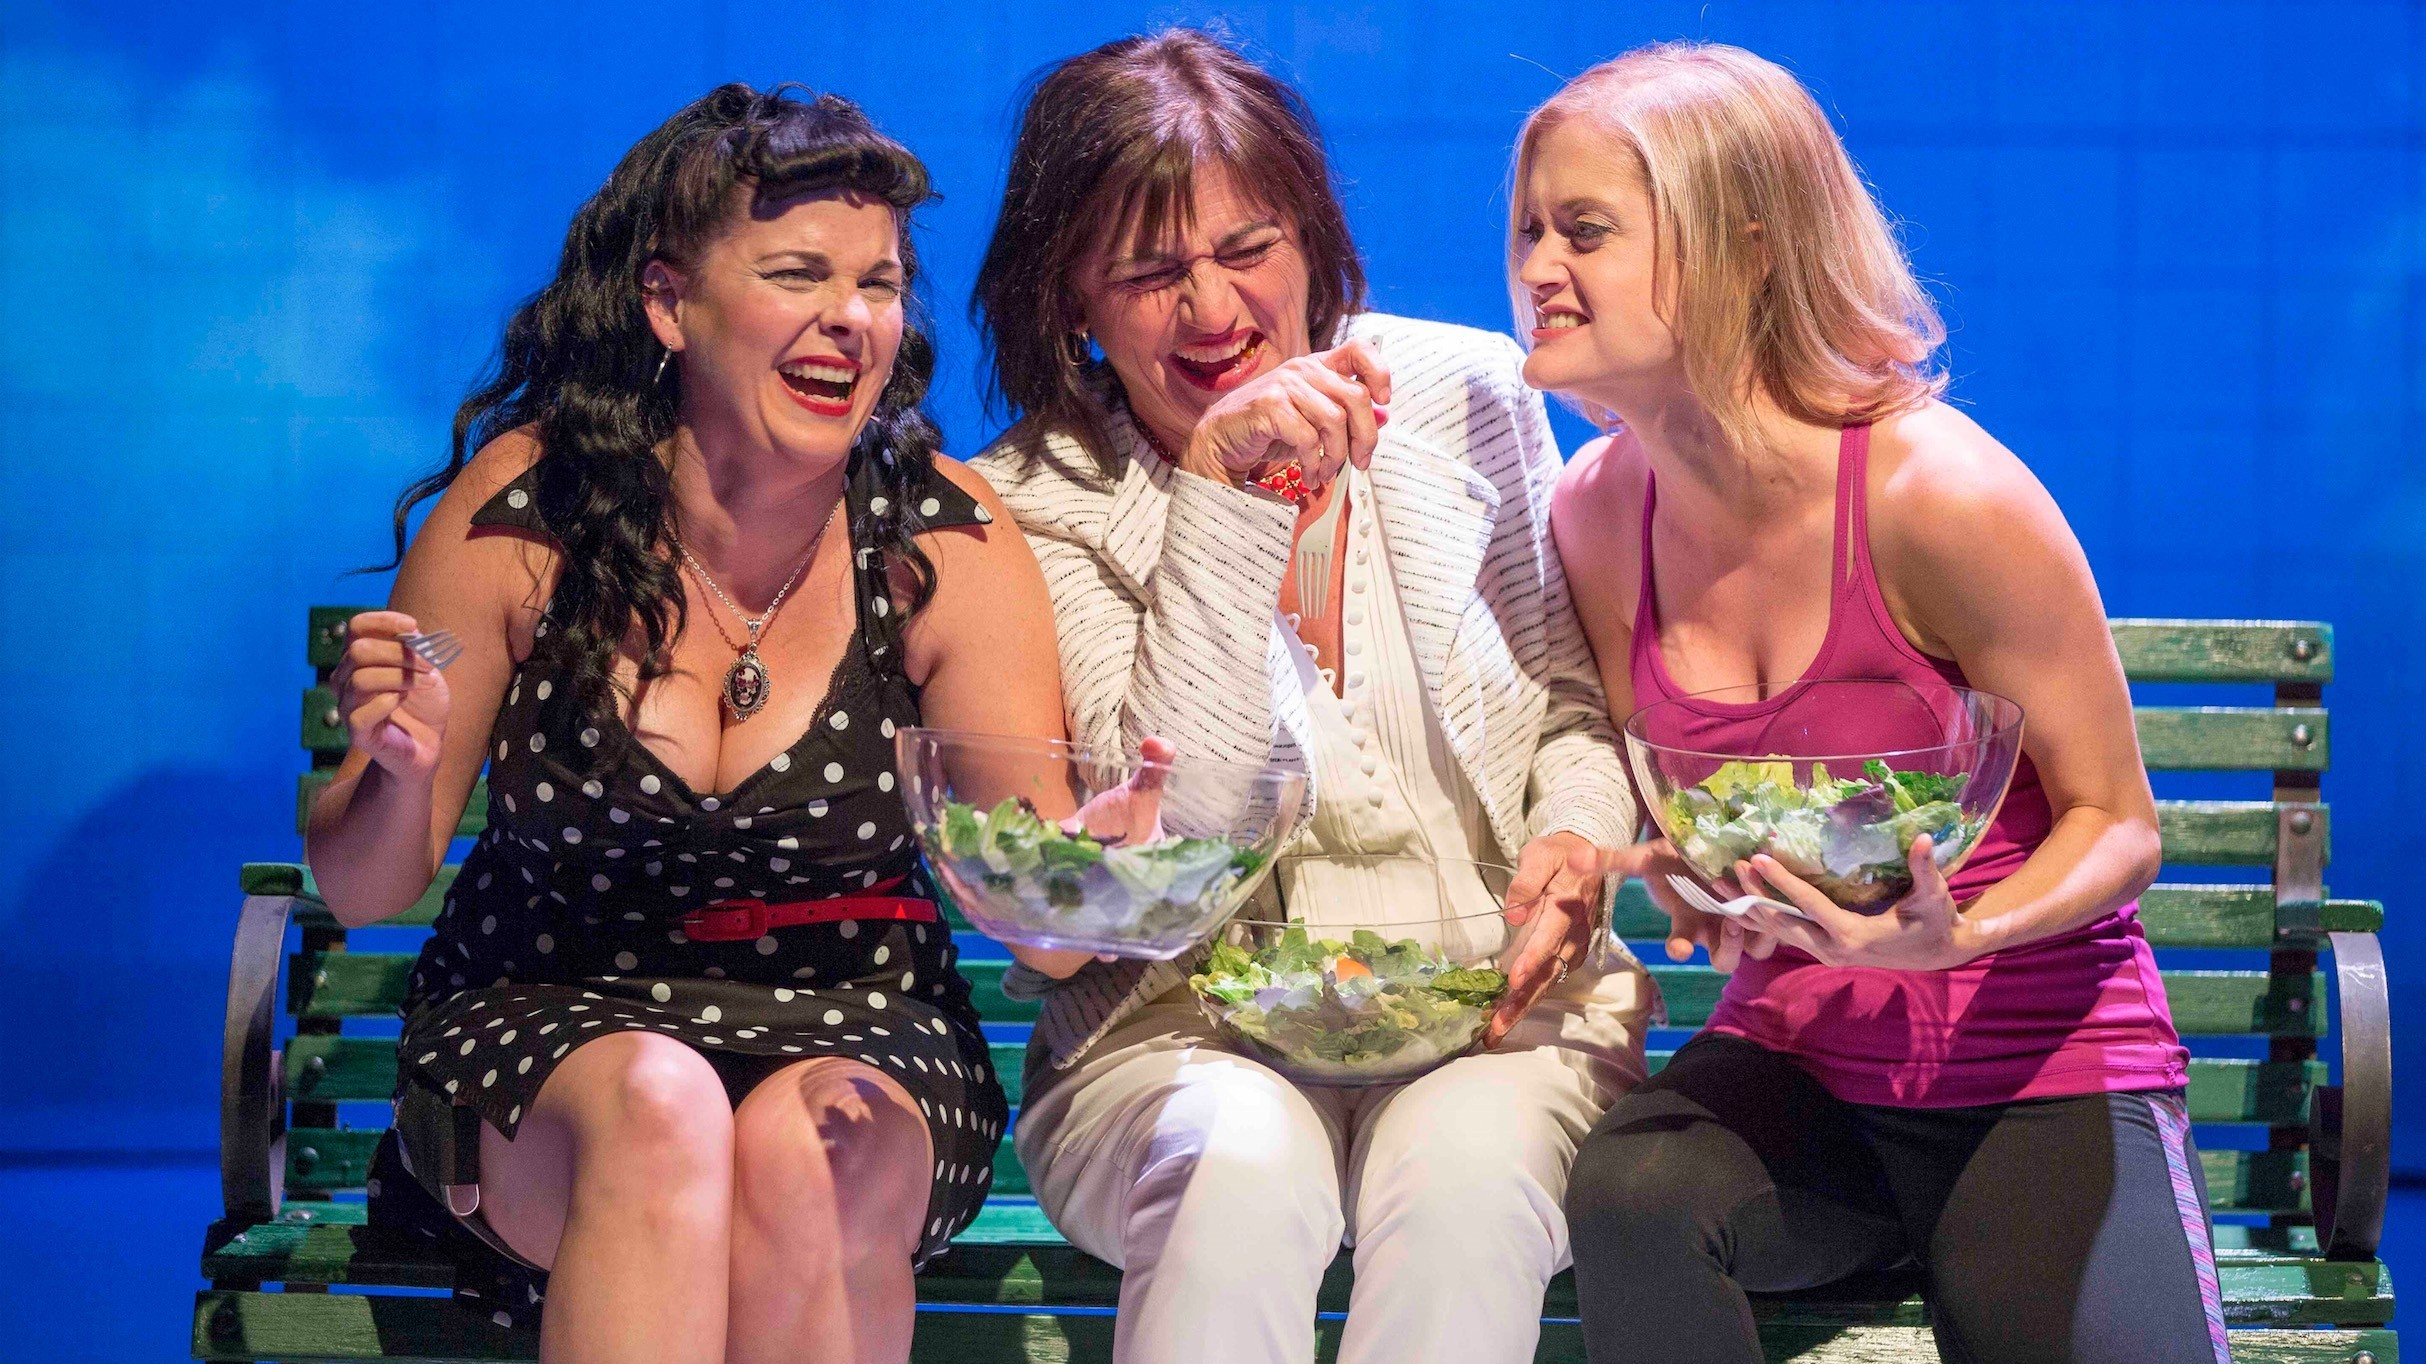 From Meme to Stage: Women Laughing Alone with Salad